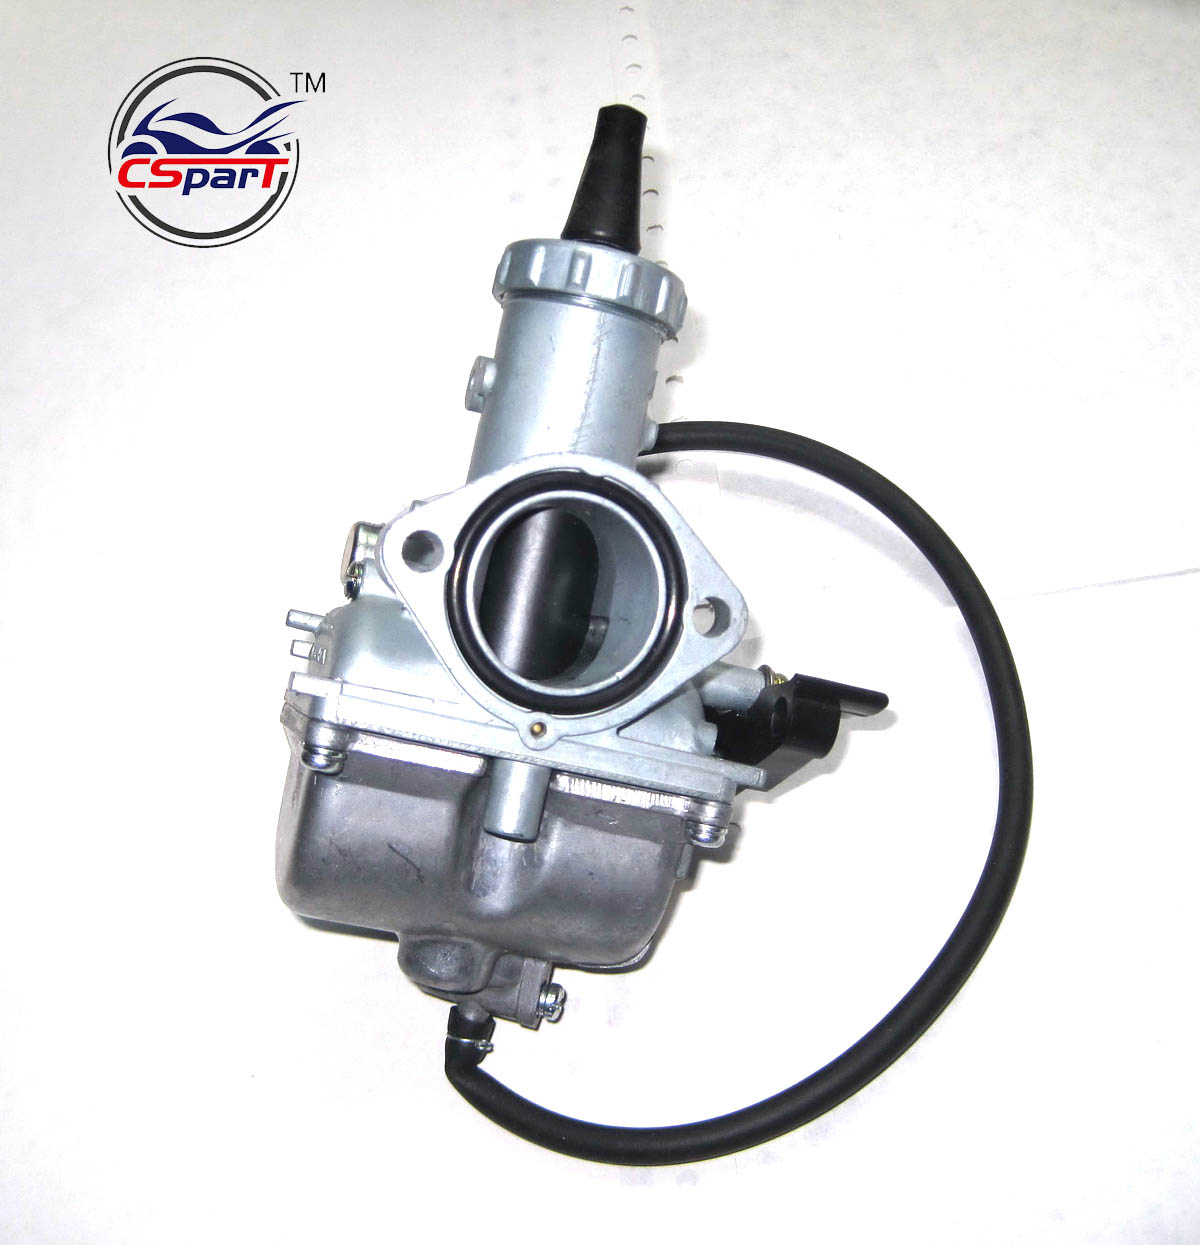 Mikuni VM26 30mm PZ30 Hand Choke Carburetor For Honda 125CC 140CC 150cc 200cc 250cc ATV Quad Dirt Bike mikuni carburetor vm24 28mm round slide carburetor for 150cc 200cc 250cc atv quad buggy go kar carb free shipping